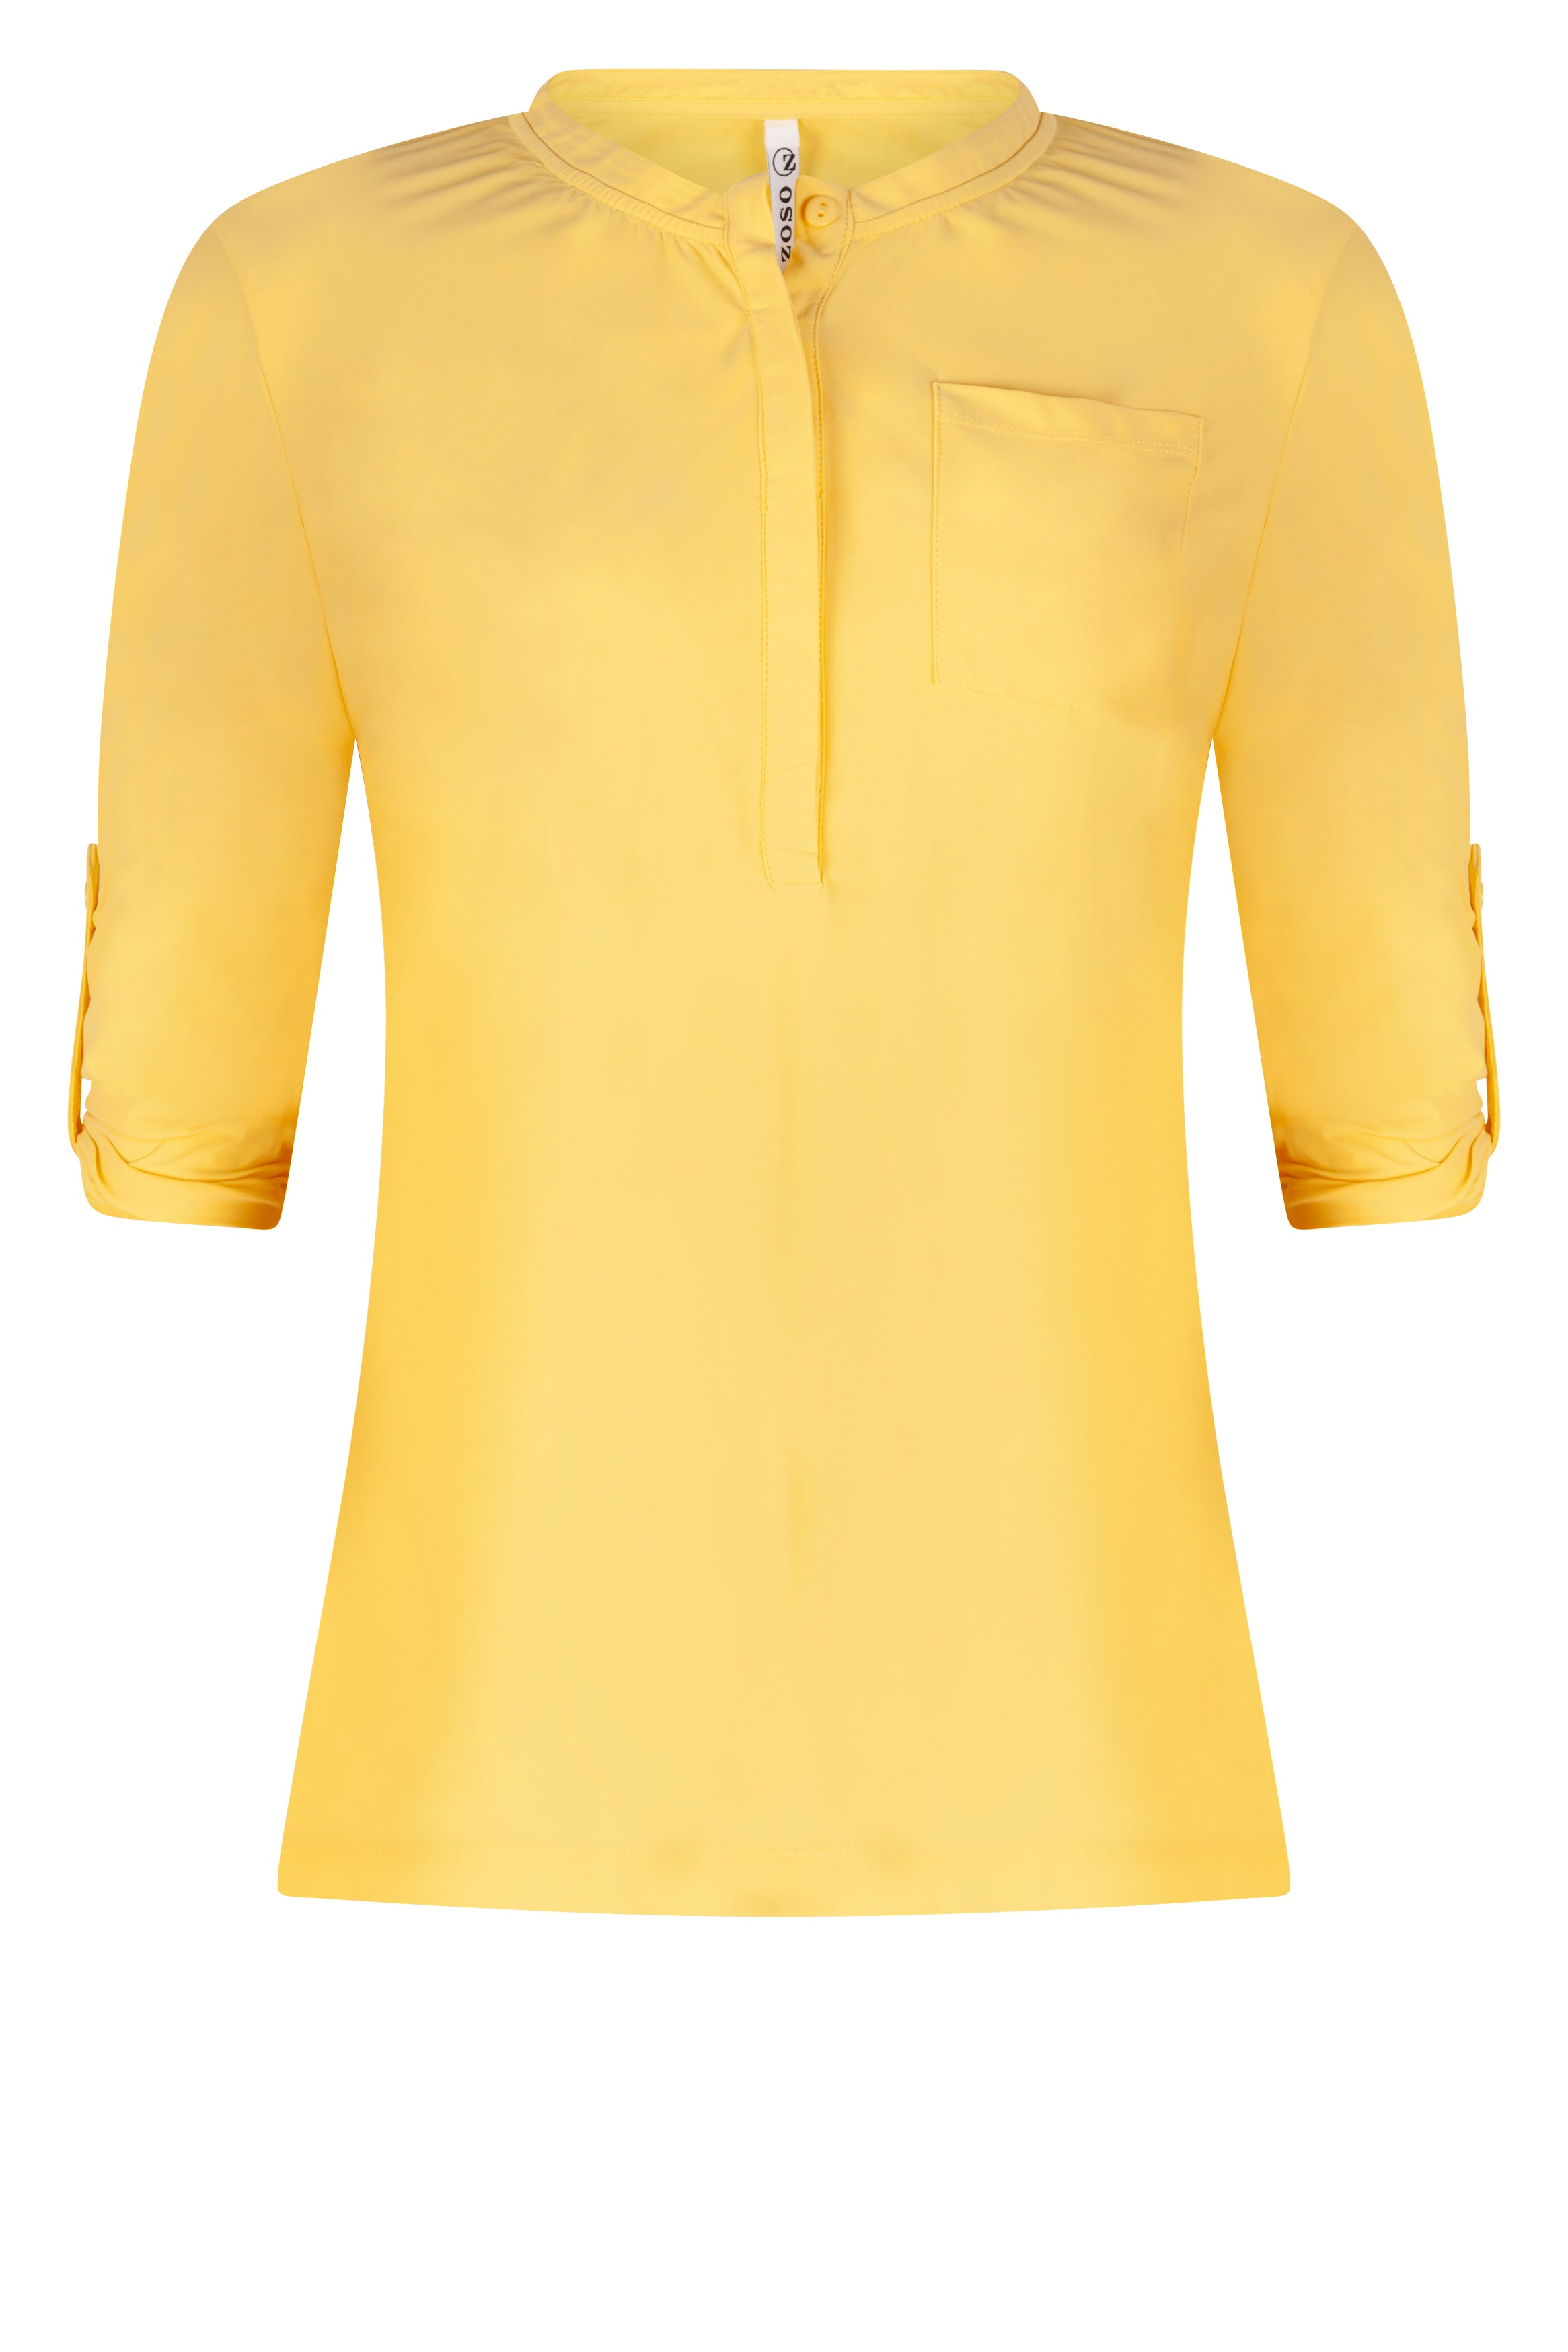 Zoso - Blouse Britney Yellow